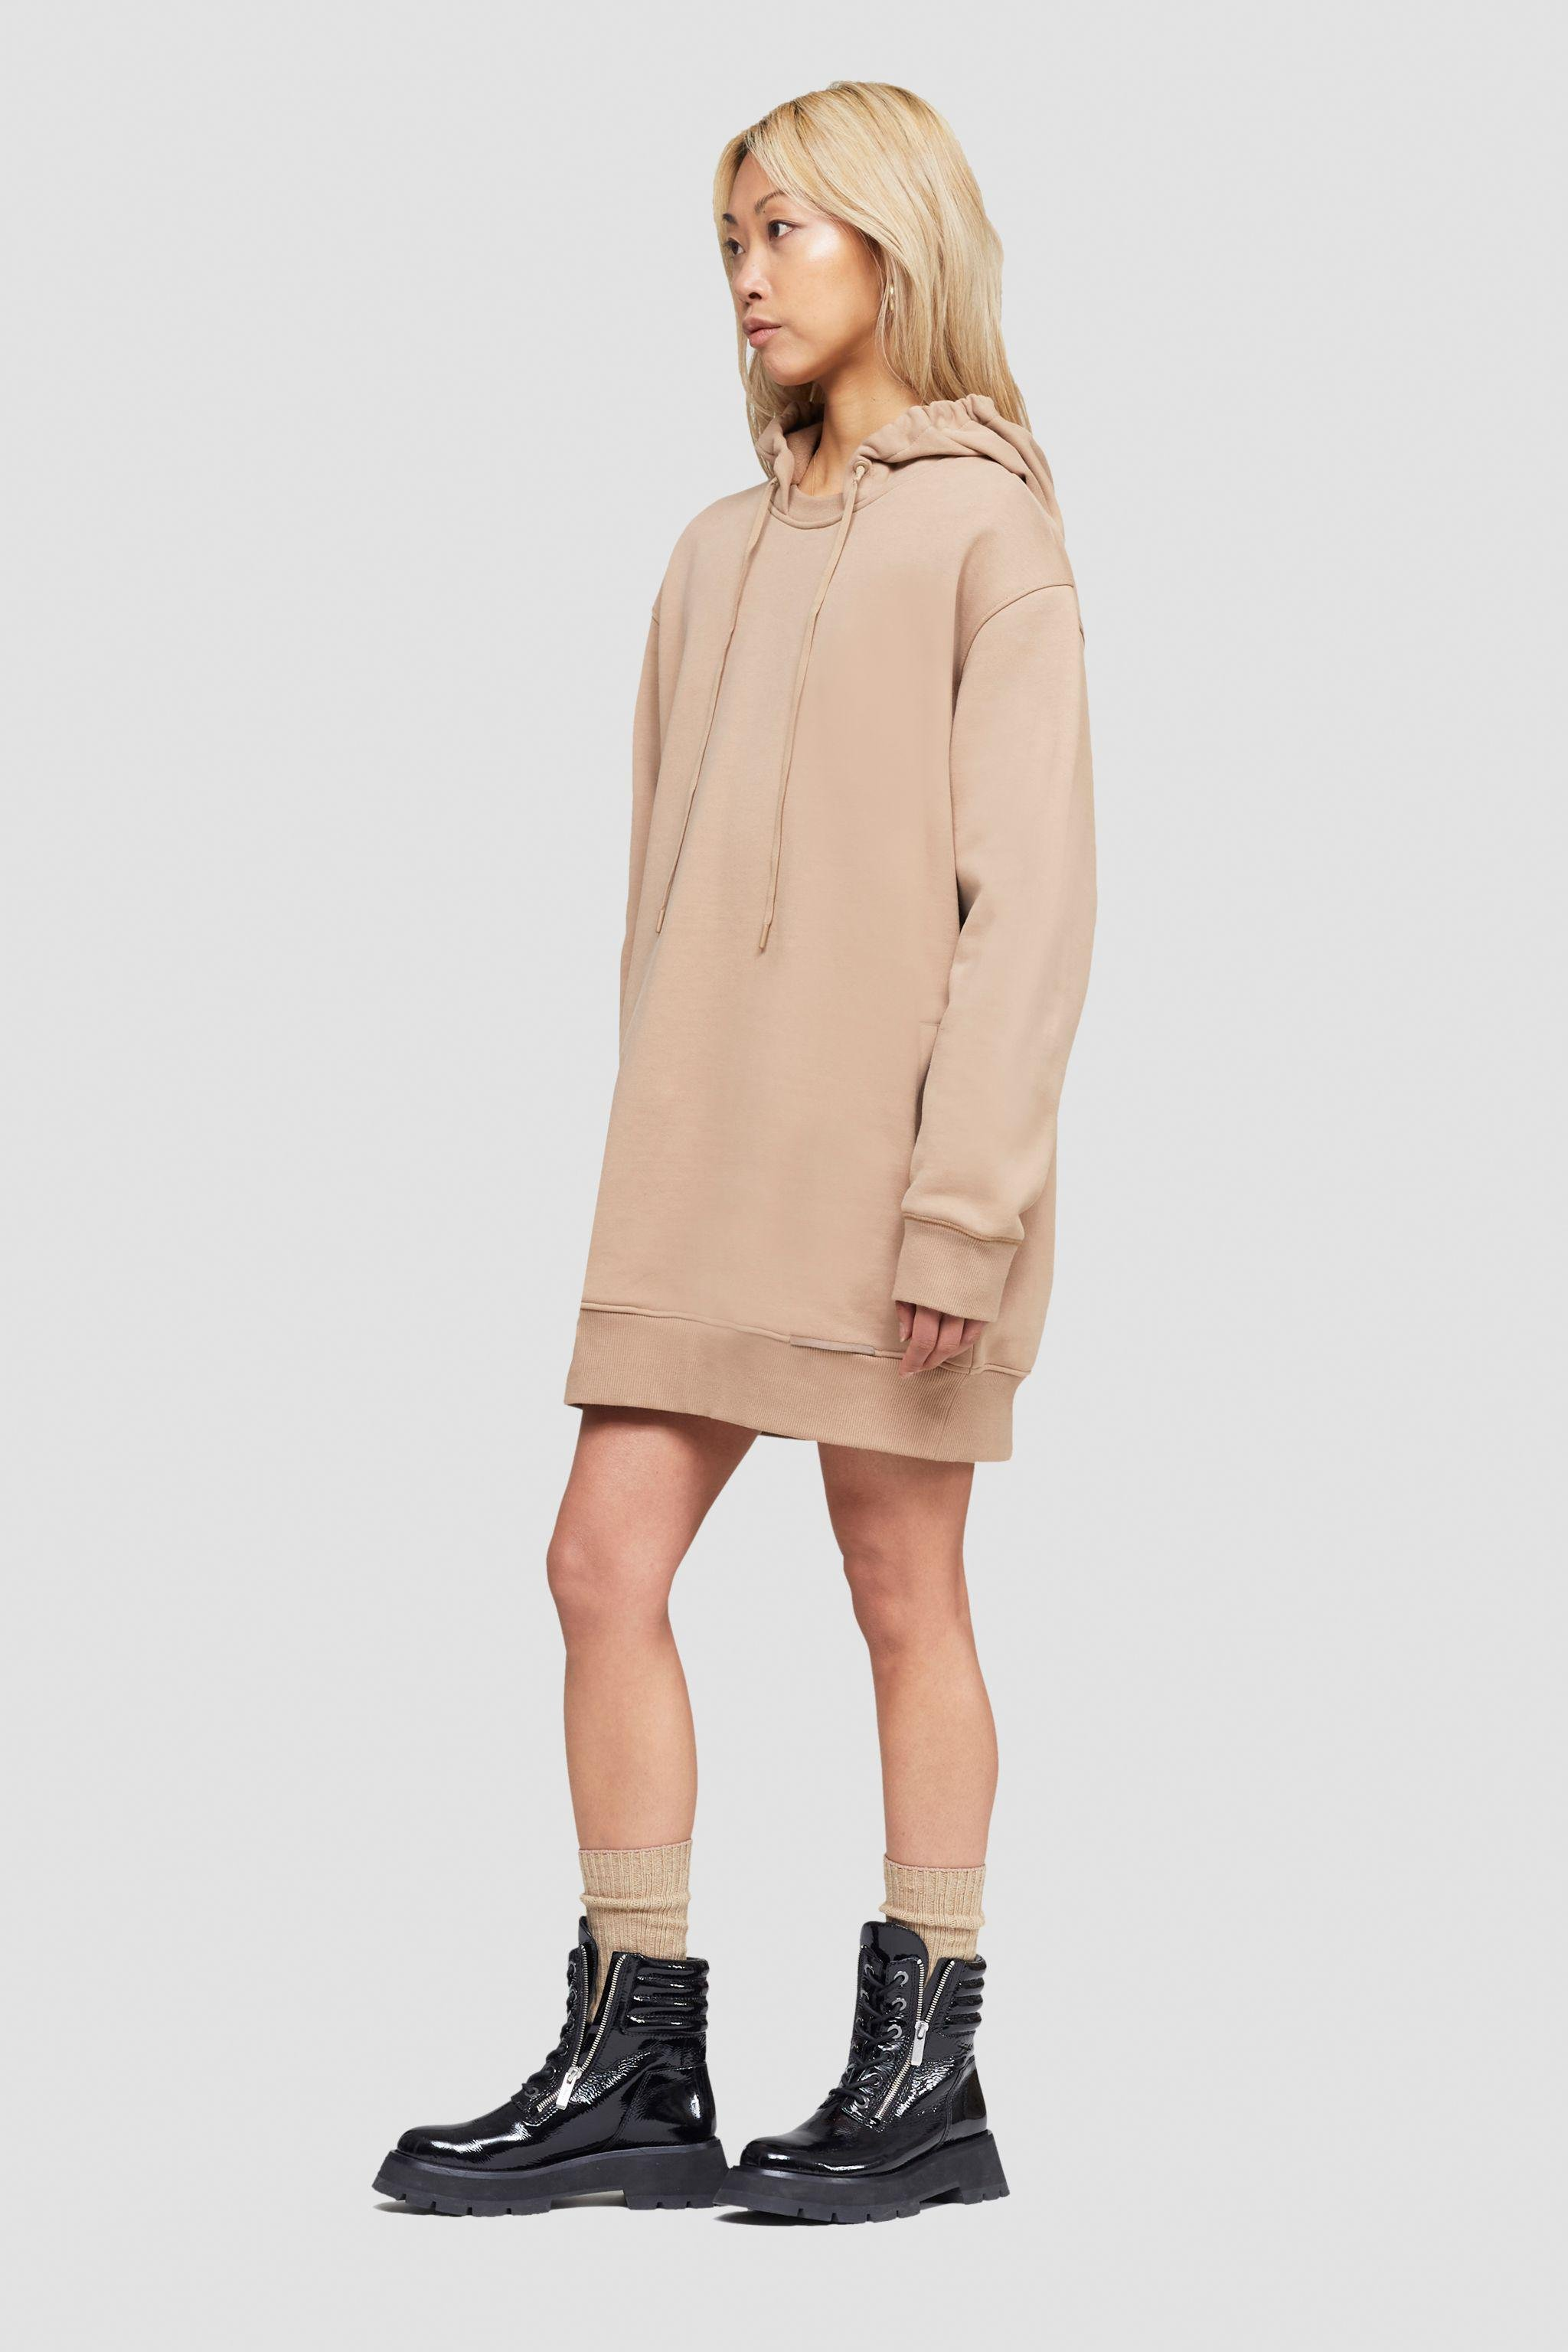 The Live-In Sweat Dress 2